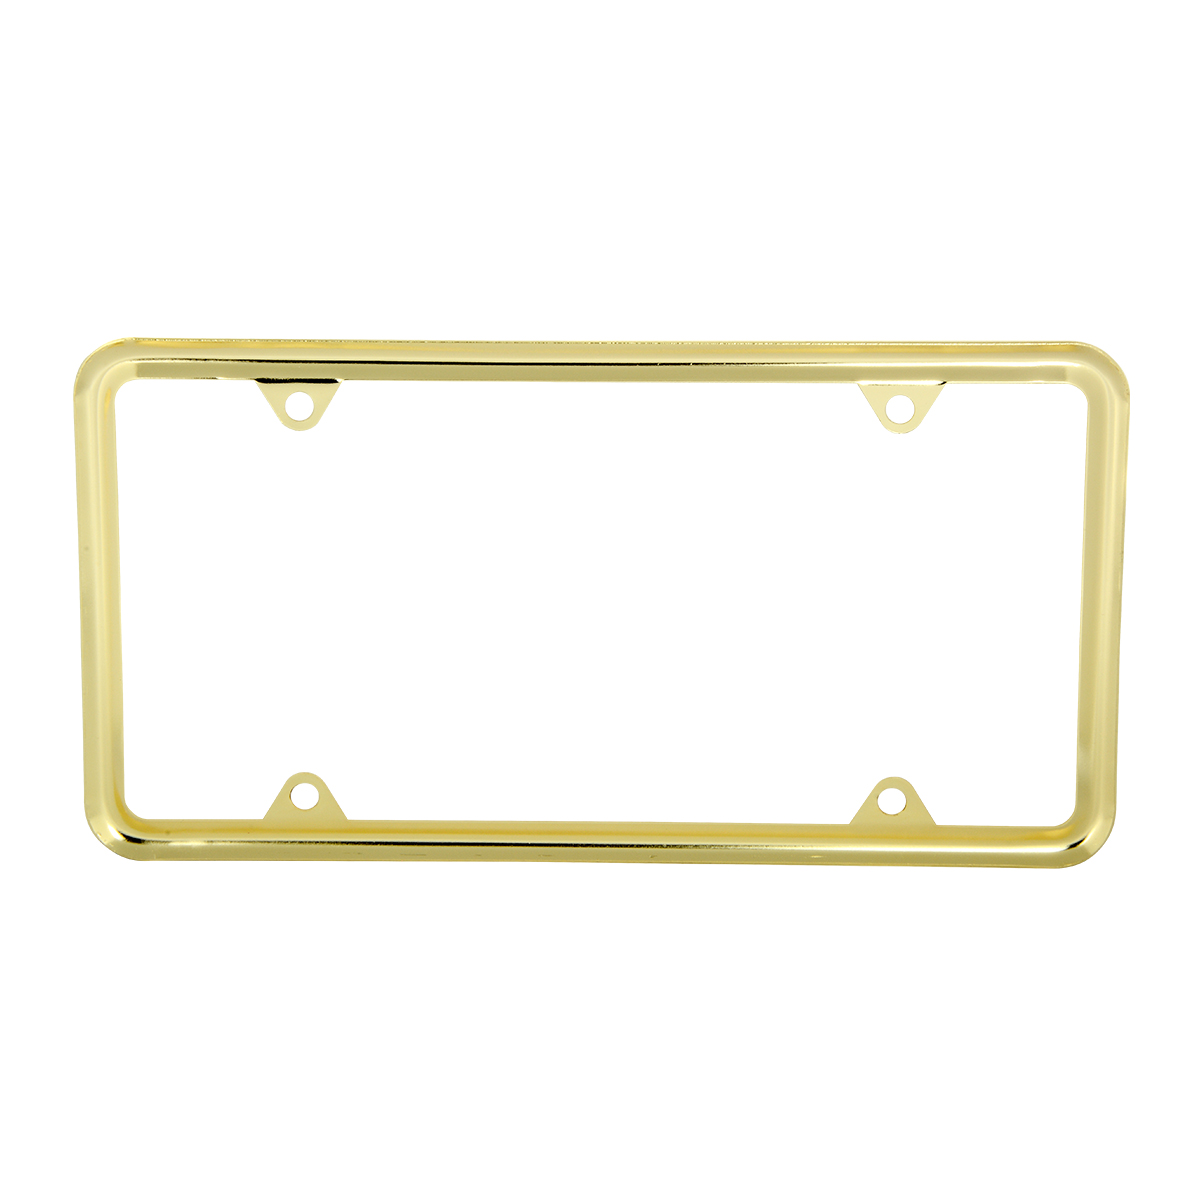 60062 Economic Brass-Plated Zinc Classic 4-Hole License Plate Frames- Back View